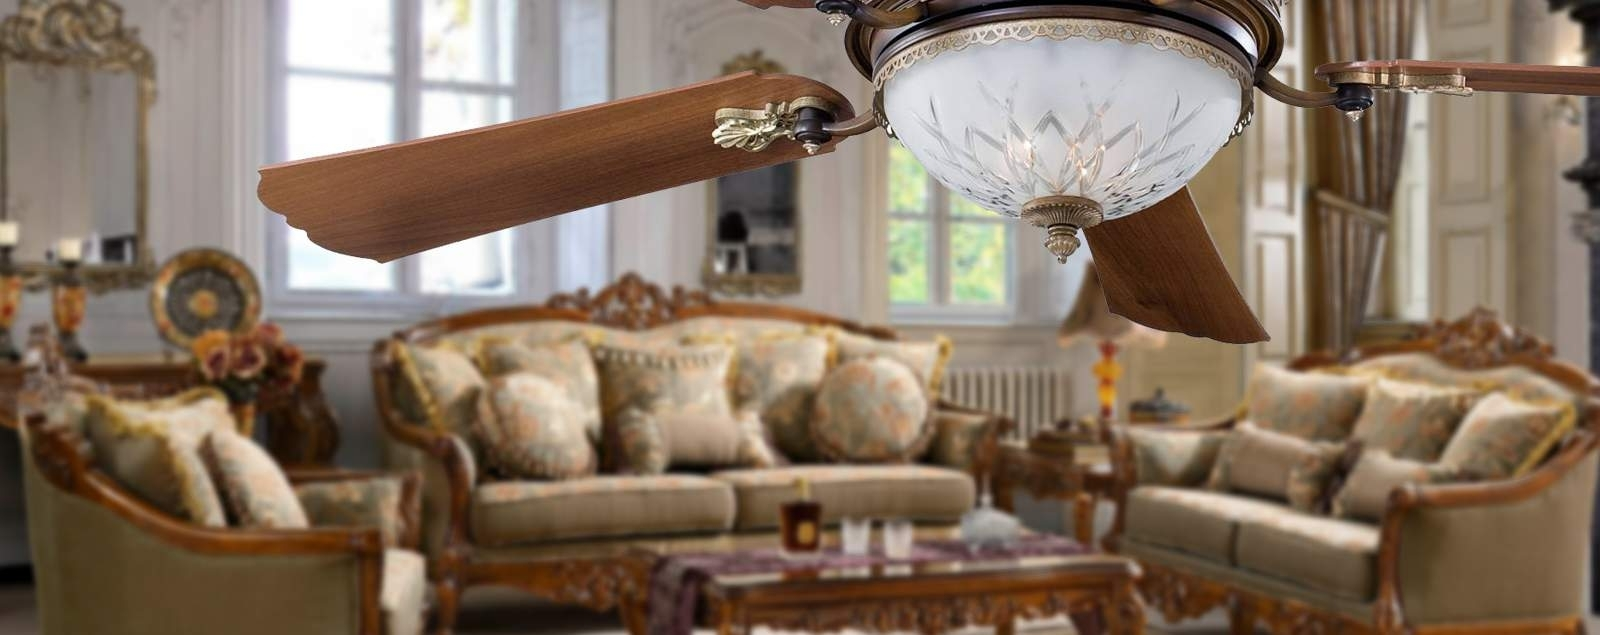 Well Known Victorian Style Outdoor Ceiling Fans Throughout Fancy Victorian Style Ceiling Fans (View 15 of 20)